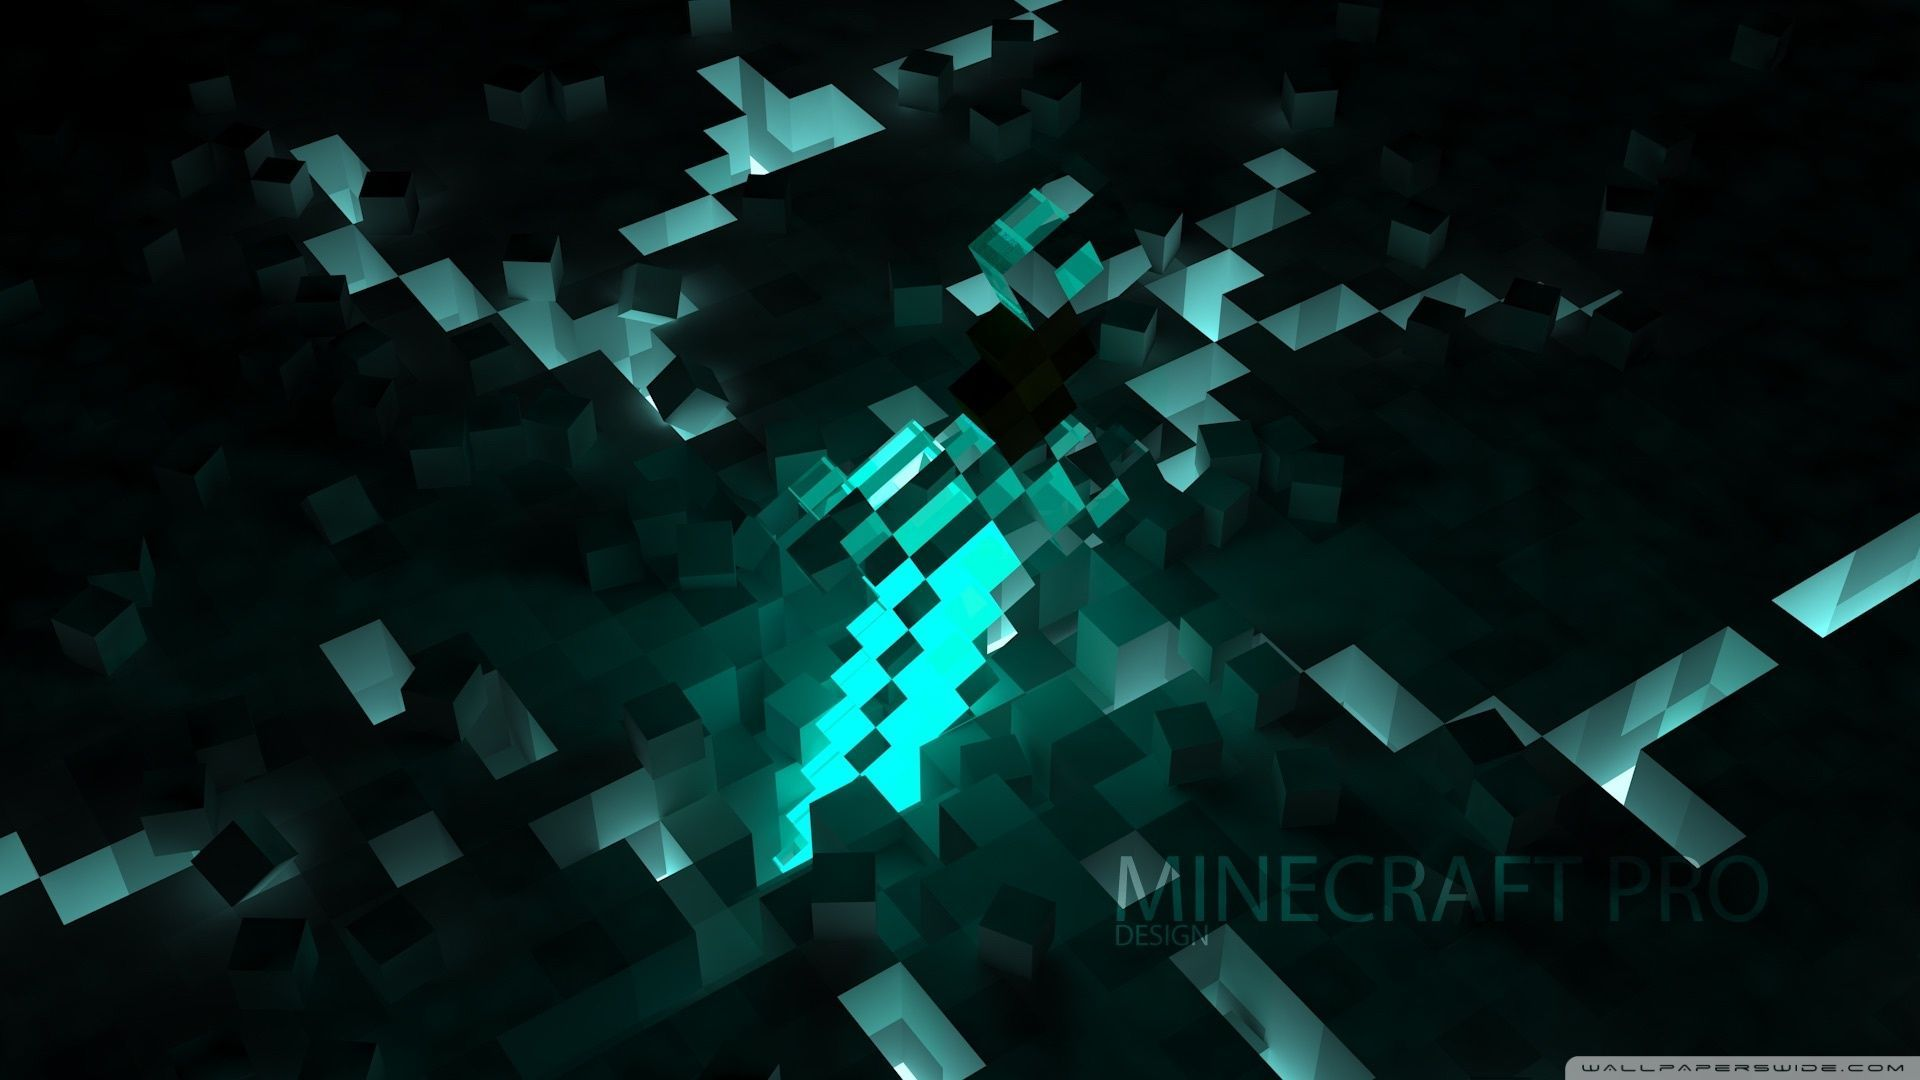 Minecraft 4k Phone Wallpapers Top Free Minecraft 4k Phone